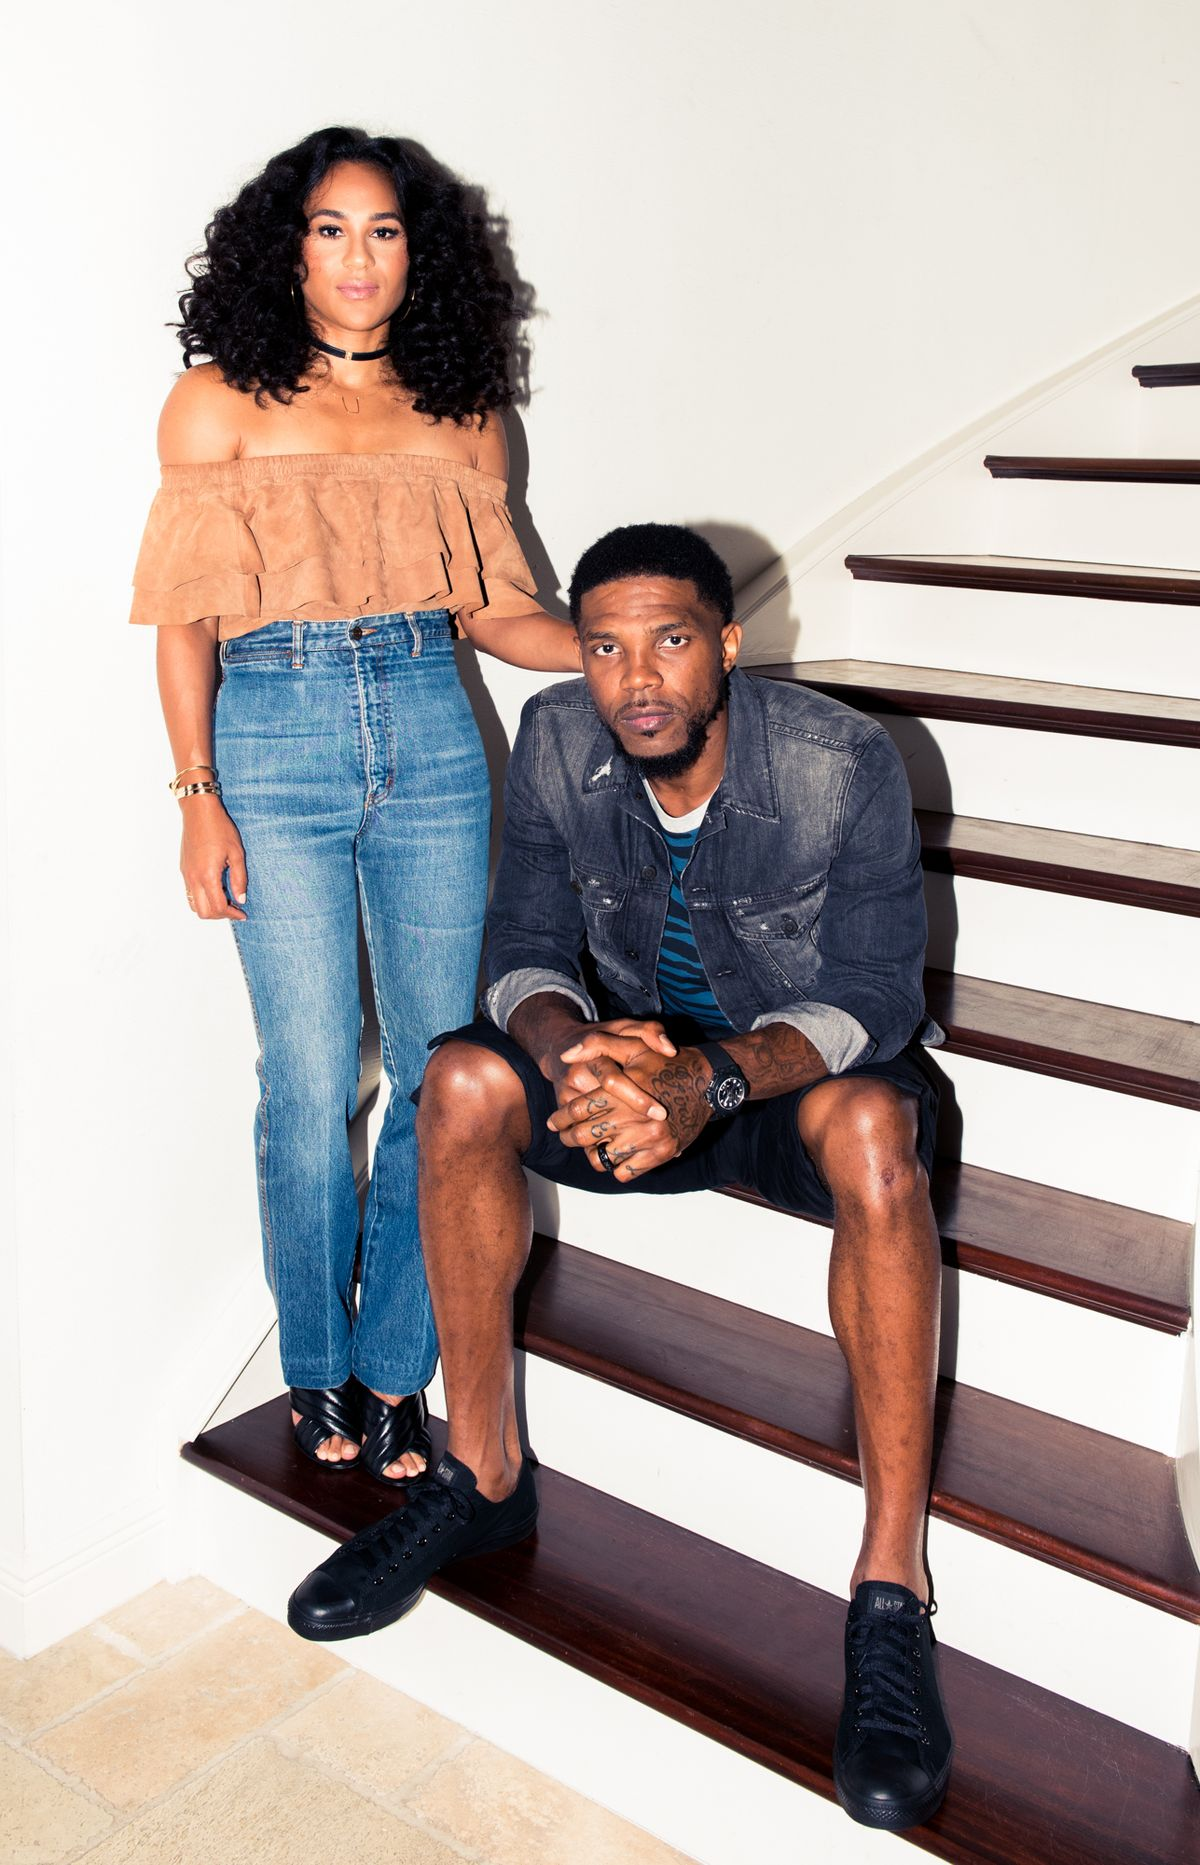 Udonis & Faith Rein Haslem Have Possibly the Biggest Sneaker Collections We've Ever Seen